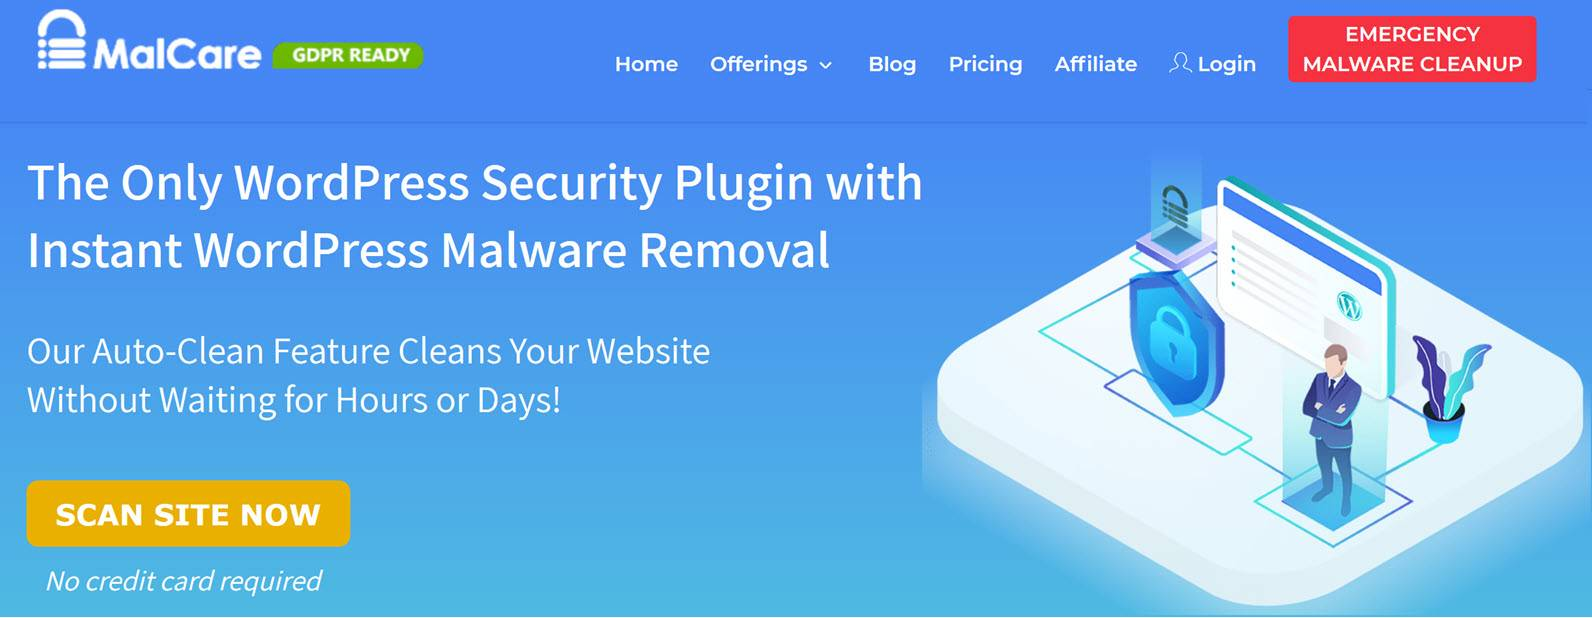 best wordpress security plugins - Malcare